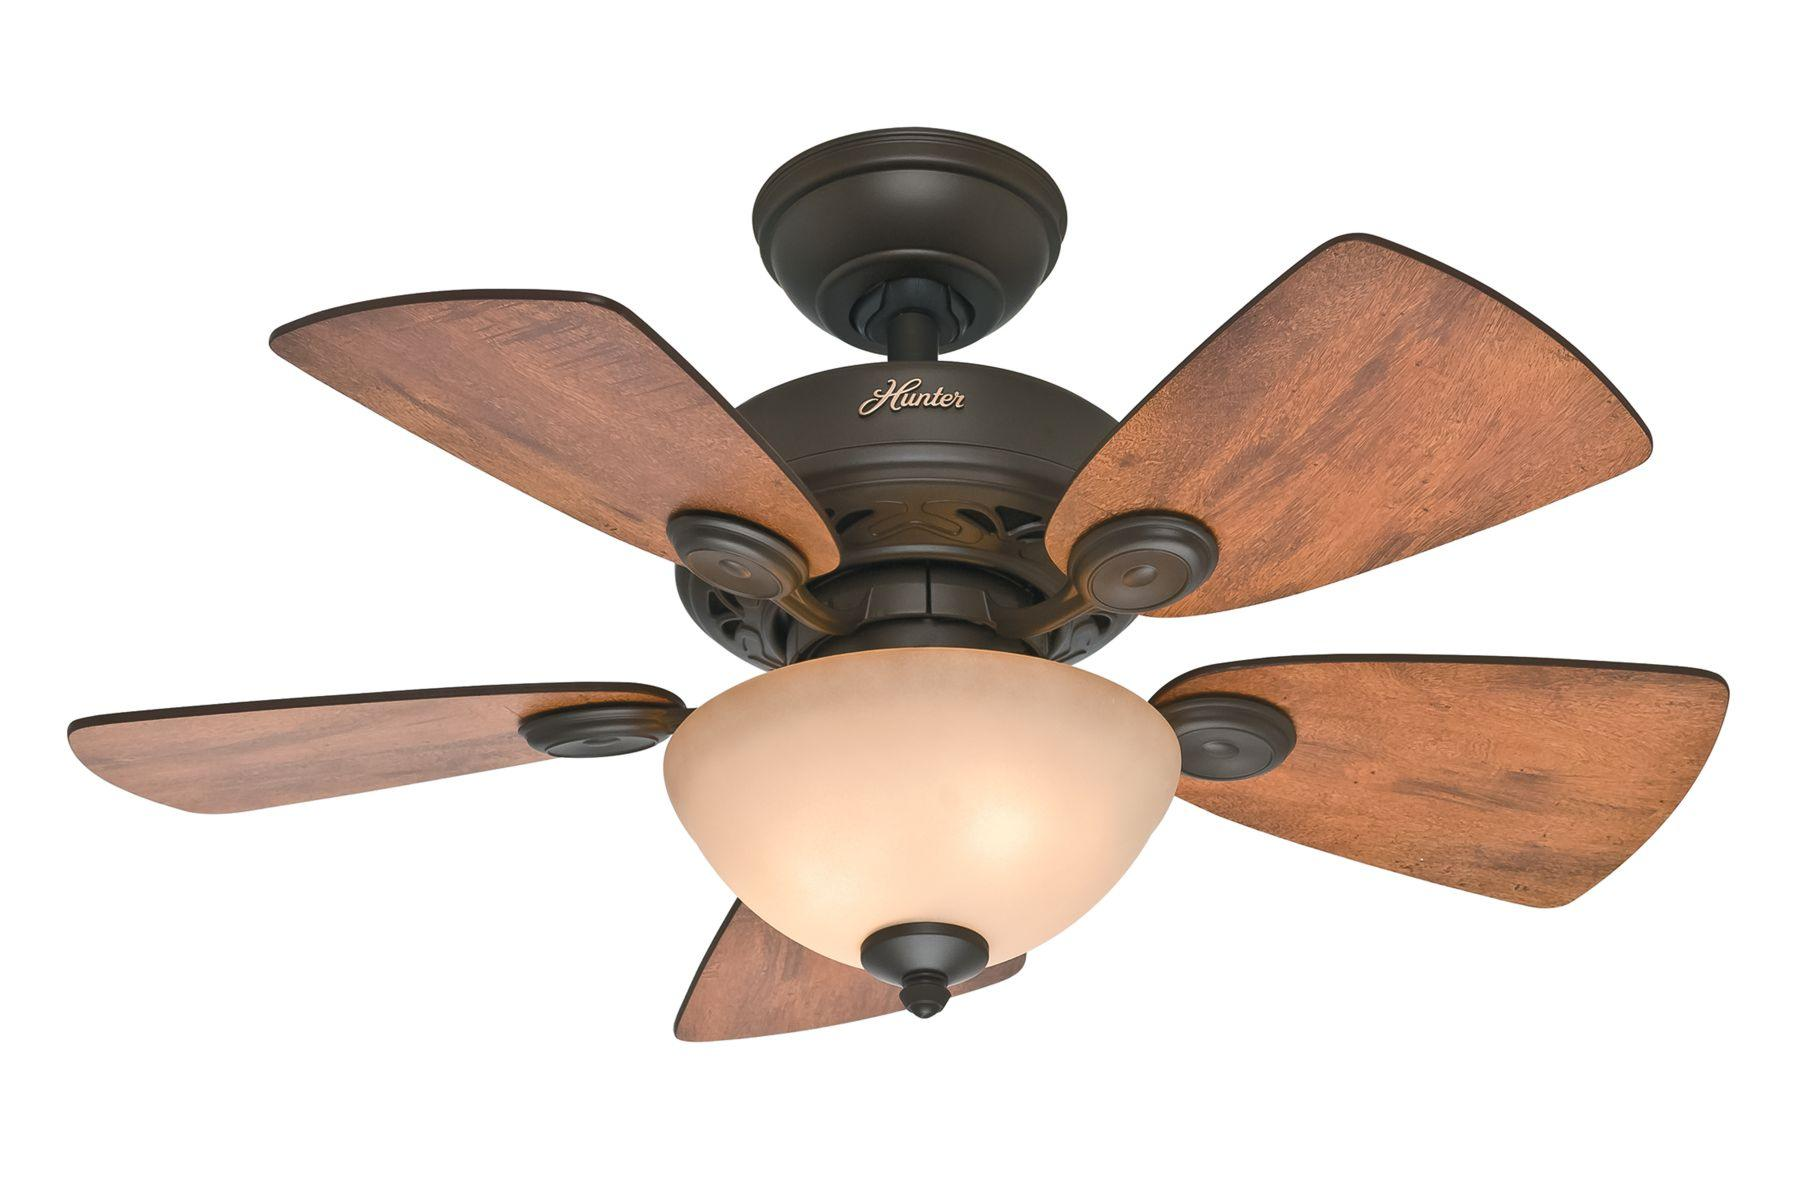 Hunter Fans 52090 Watson 34 Inch Ceiling Fan